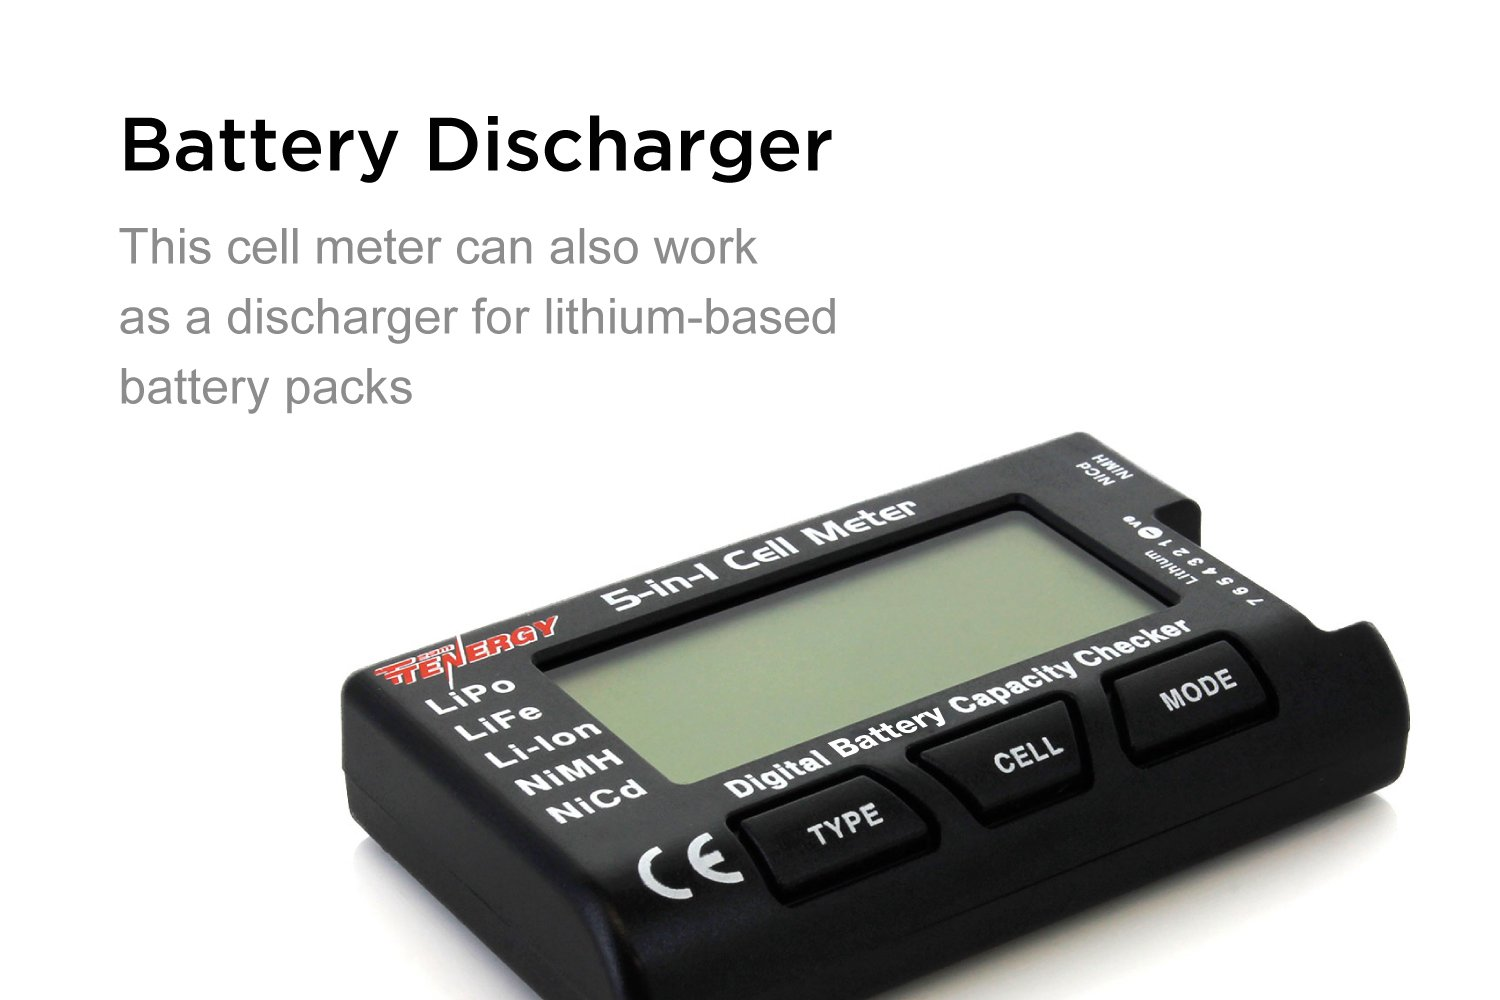 Tenergy 5 In 1 Intelligent Cell Meter Capacity Checker Battery Common Symbols Include A Switches Meters Power Balancer Discharger Internal Resistance Tester Esc Servo Ppm